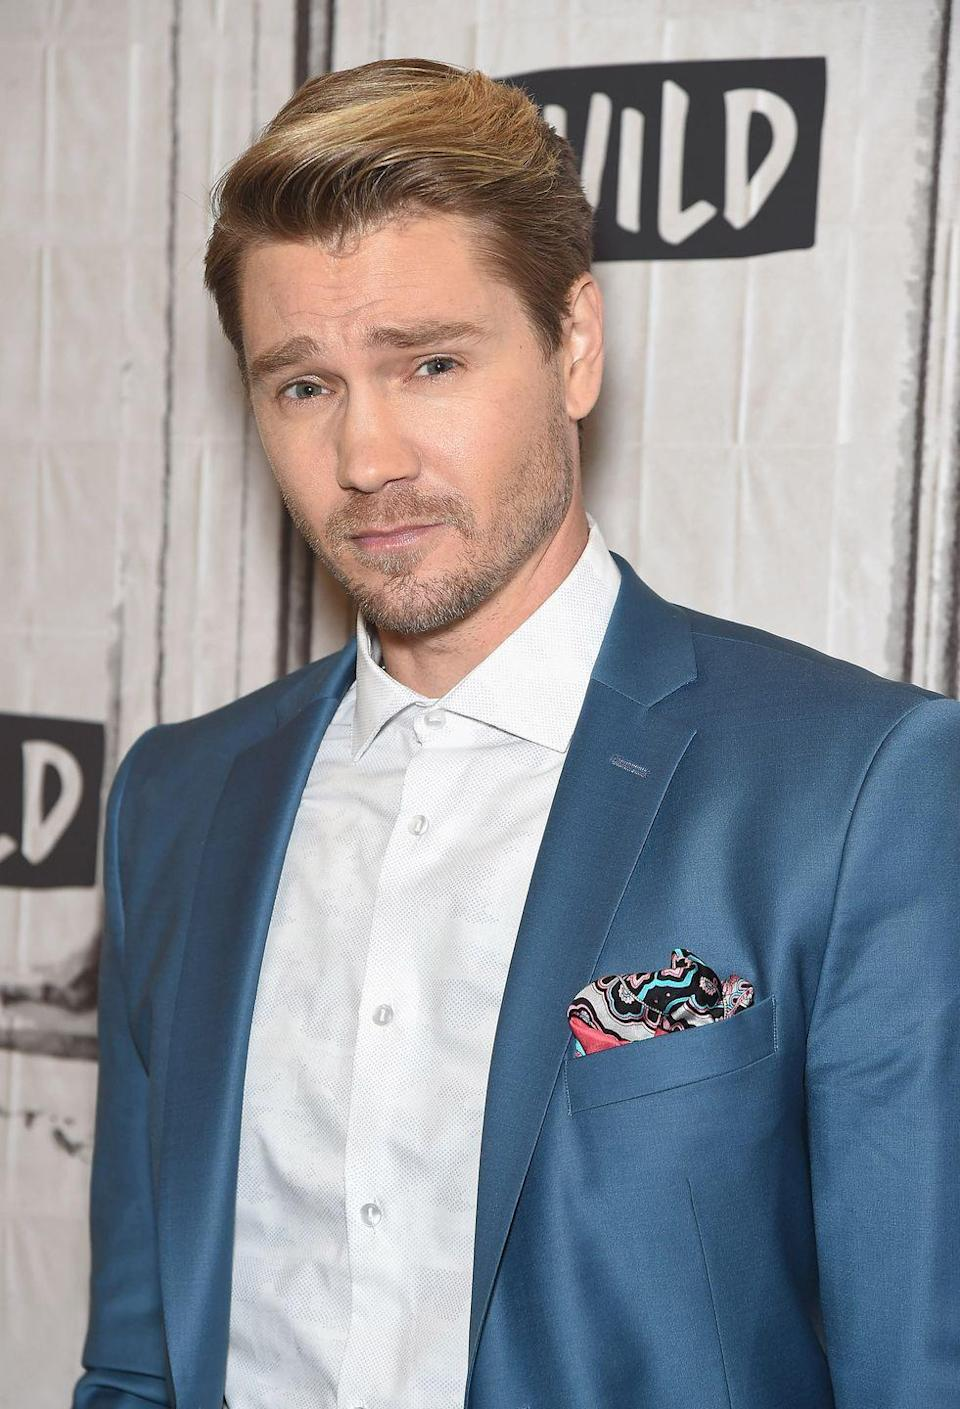 "<p>Although Chad Michael Murray started out as the main character on <em>One Tree Hill,</em> the actor exited the show before its final season. It was announced that Murray would not return after the star <a href=""https://latimesblogs.latimes.com/showtracker/2009/05/one-tree-hill-stars-chad-michael-murray-and-hilarie-burton-exit.html"" rel=""nofollow noopener"" target=""_blank"" data-ylk=""slk:failed to renegotiate his contract"" class=""link rapid-noclick-resp"">failed to renegotiate his contract</a> with the CW network.</p>"